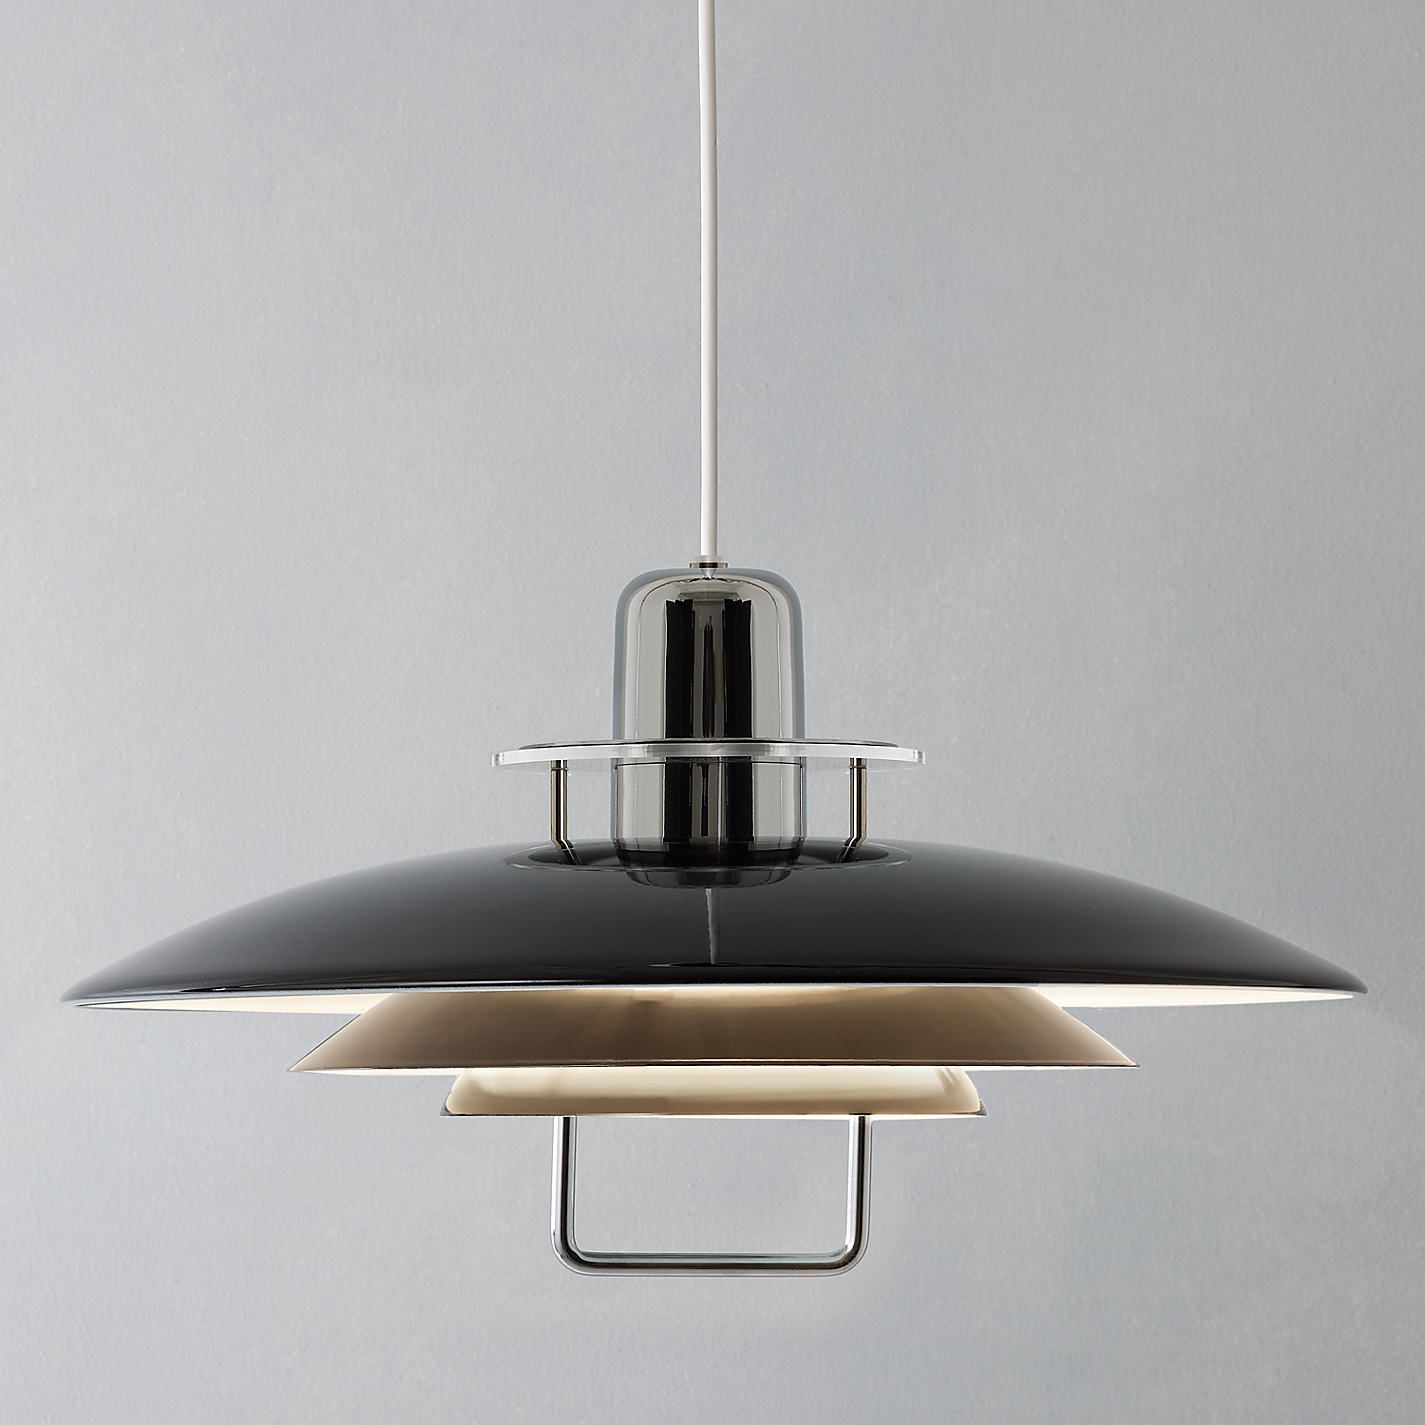 Belid felix rise and fall ceiling light john lewis ceiling and belid felix rise and fall ceiling light workwithnaturefo